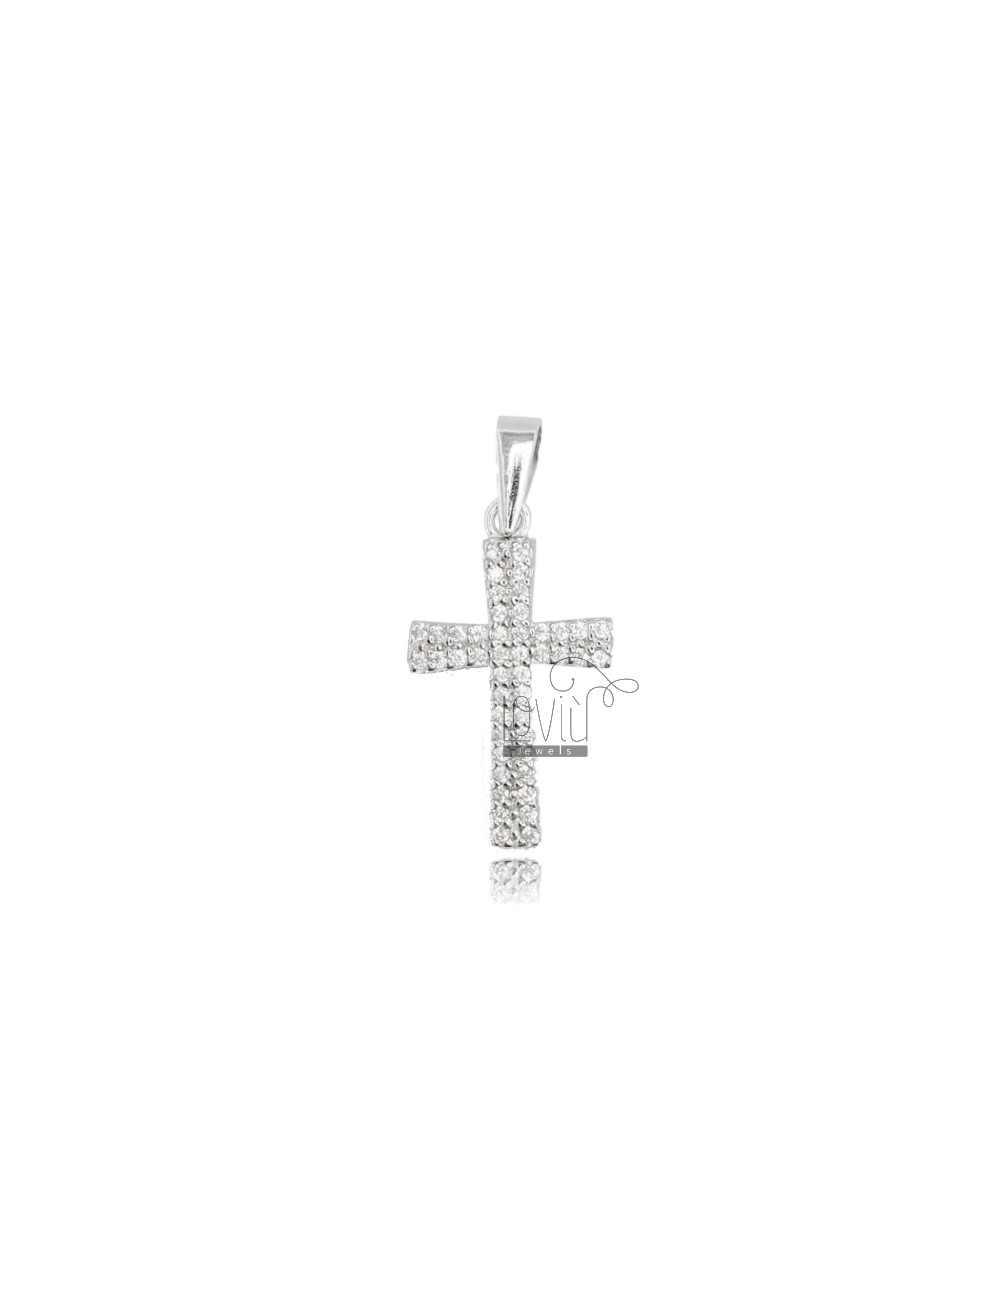 CROSS PENDANT 20X12 MM SILVER RHODIUM TIT 925 AND WHITE ZIRCONIA